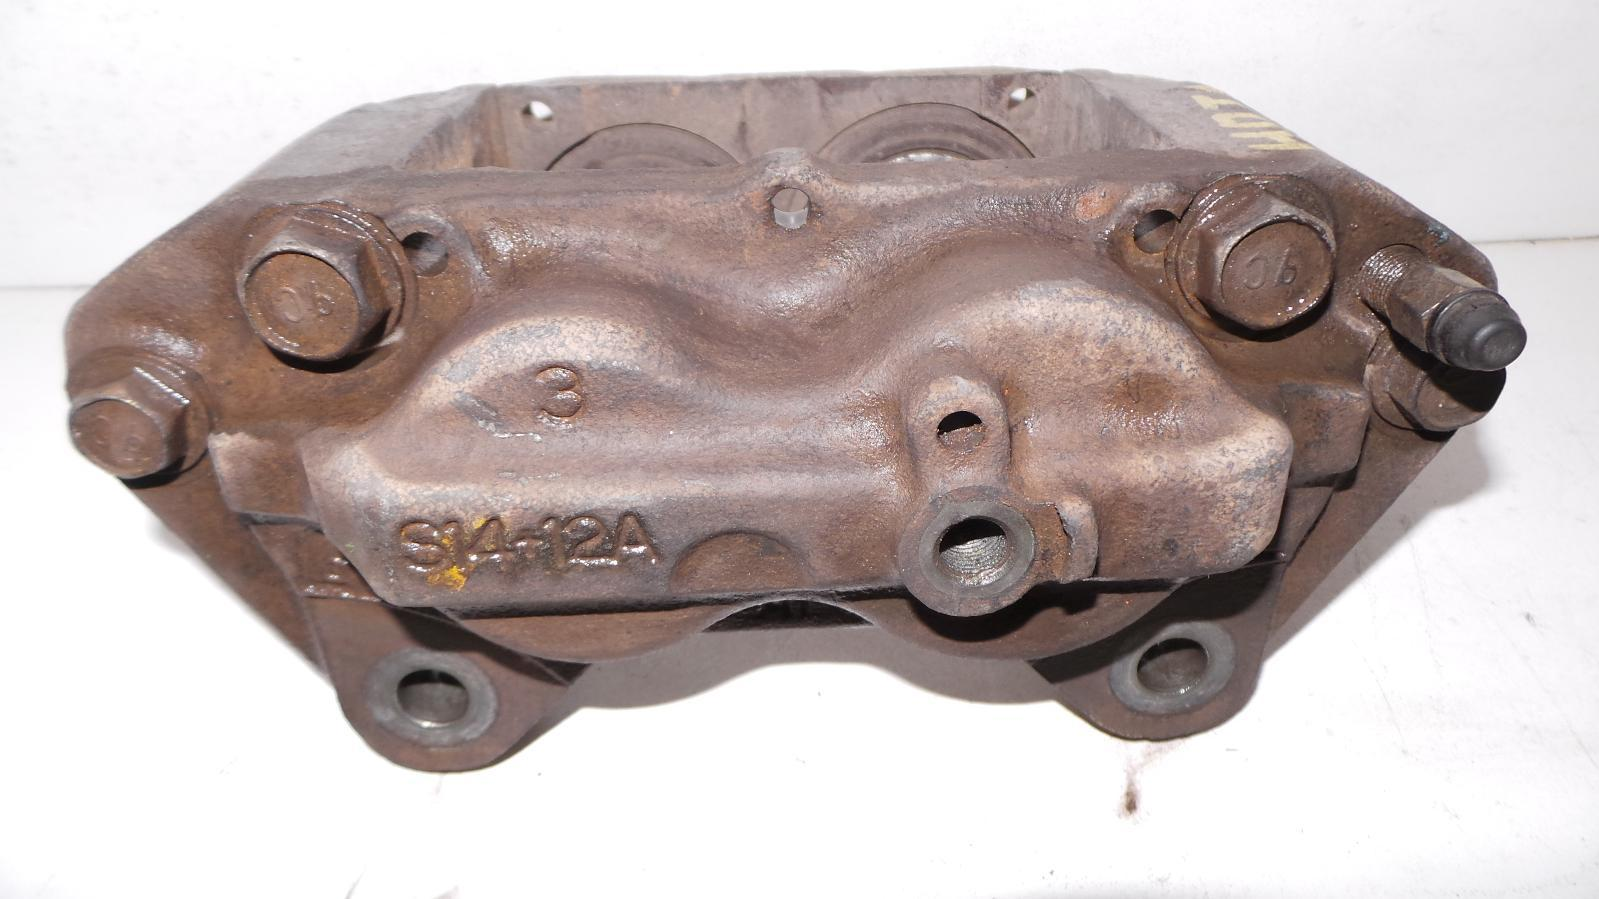 TOYOTA LANDCRUISER, Caliper, 100 SERIES, LH FRONT 4.2 1HDFTE TURBO DIESEL, 01/98-10/07